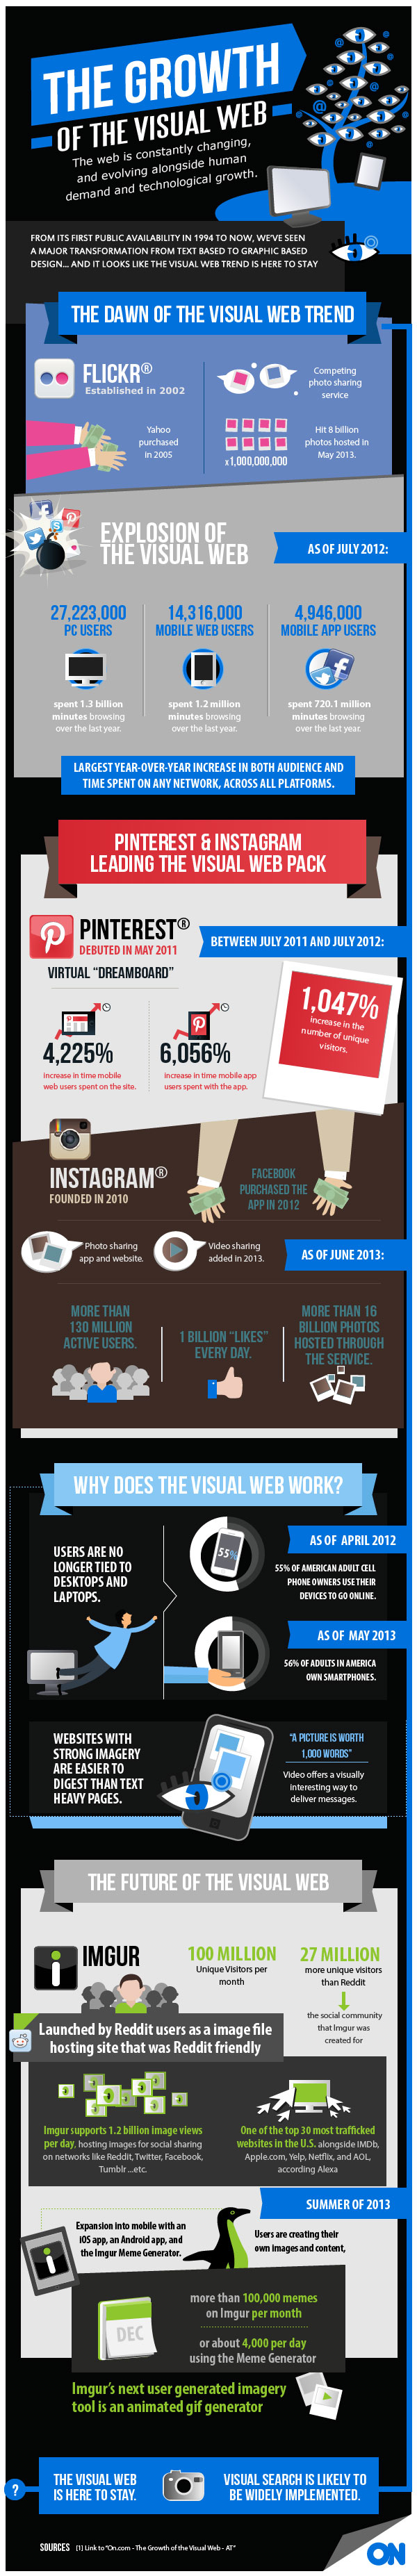 Growth of the Visual Web